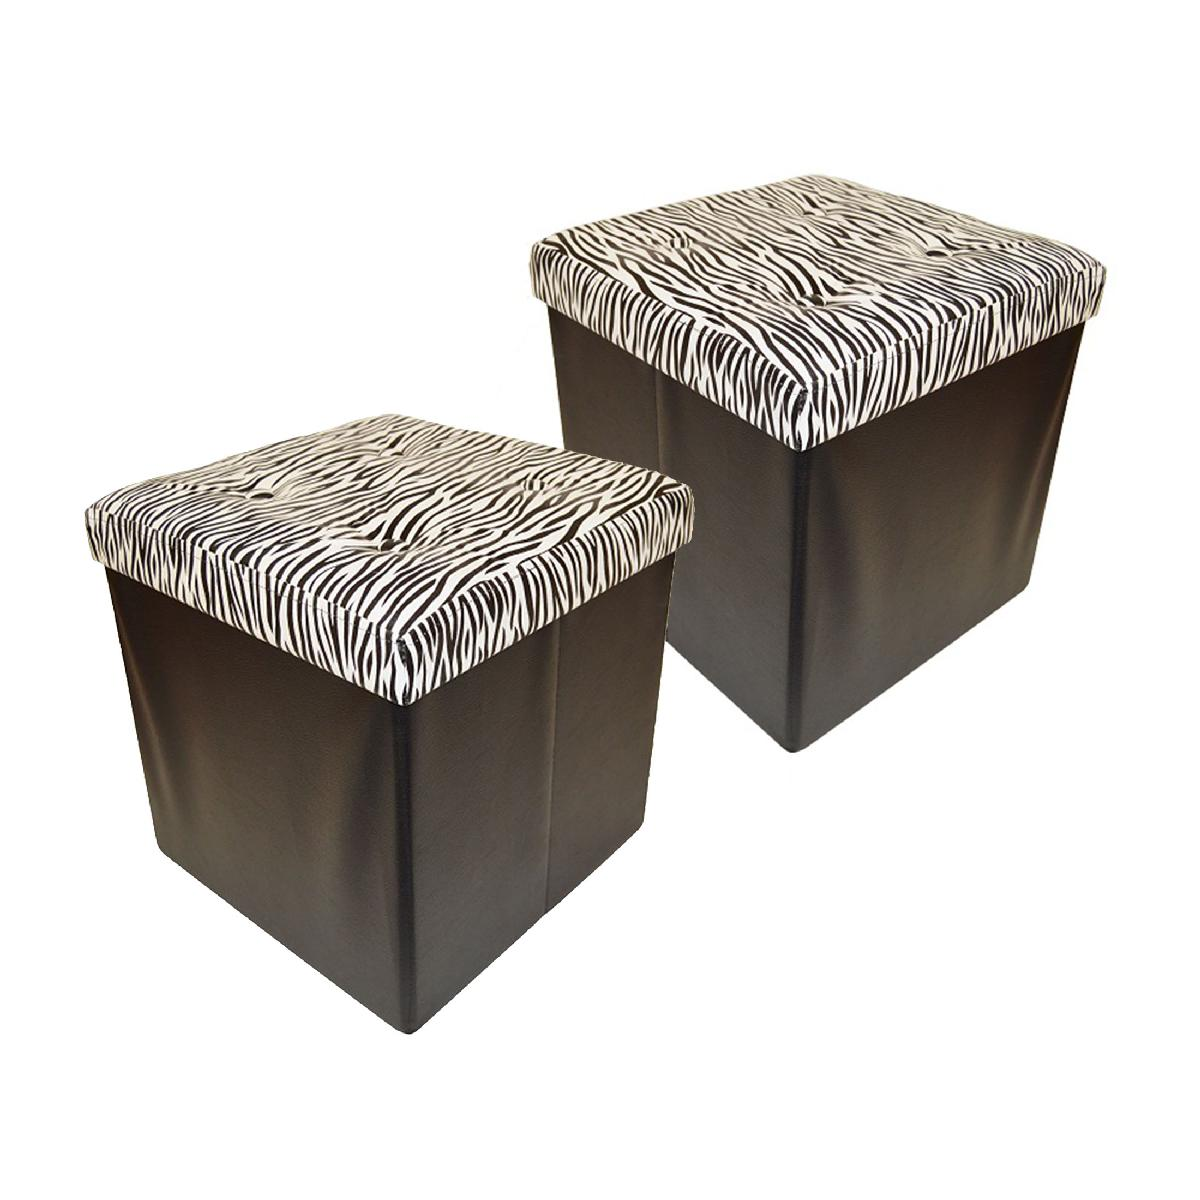 2 Pack Folding Storage Ottoman, Zebra with Buttons